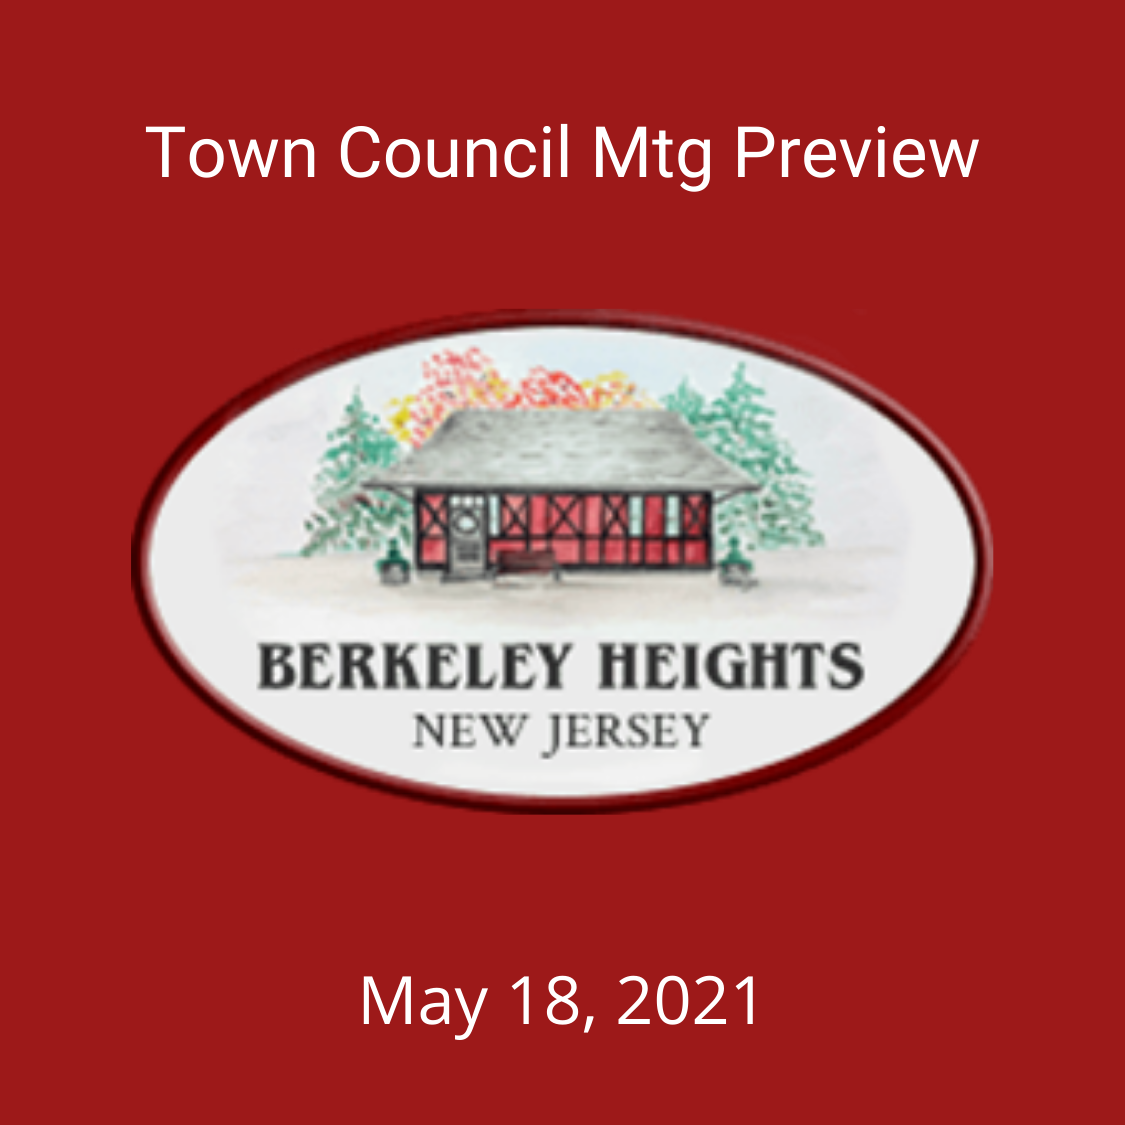 Council Mtg Preview